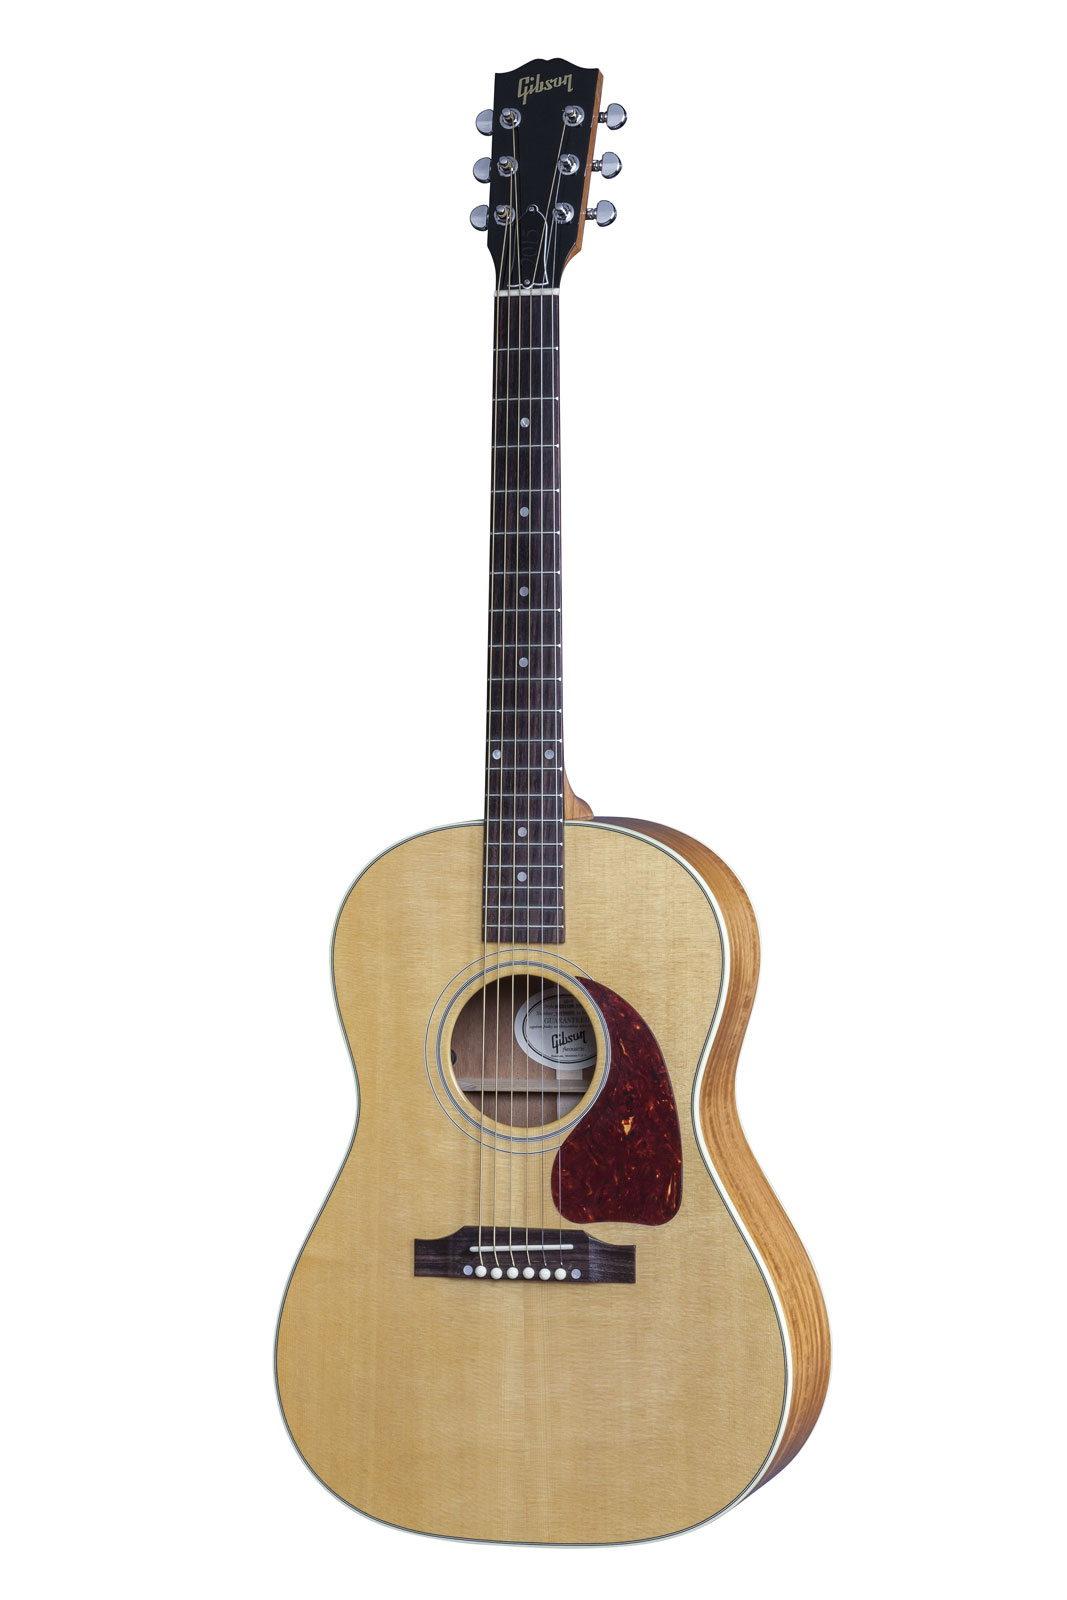 Gibson Lg 2 American Eagle 2016 Antique Natural + Etui